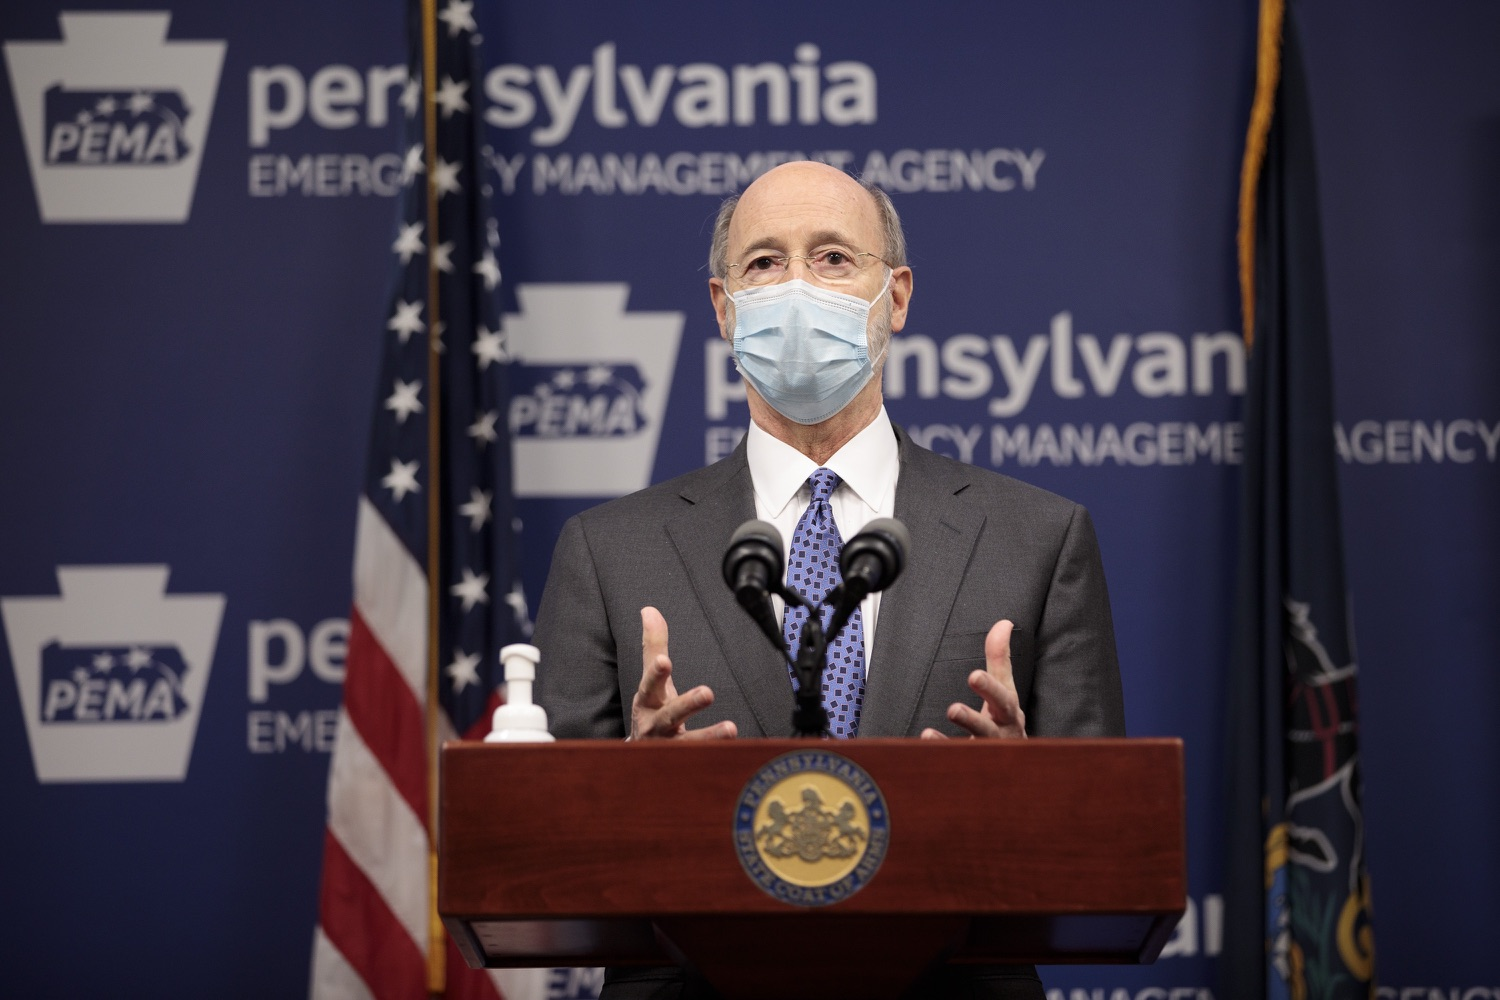 "<a href=""https://filesource.wostreaming.net/commonwealthofpa/photo/18472_gov_vaccine_dz_14.jpg"" target=""_blank"">⇣ Download Photo<br></a>Pennsylvania Governor Tom Wolf speaks at the press conference.  The commonwealths COVID-19 vaccination distribution plan was designed to be fluid and flexible to meet guidance and recommendations from the federal government. Today, Governor Tom Wolf and Secretary of Health Dr. Rachel Levine announced the fourth version of the plan, detailing the updates and how the state is working to ensure safe, swift implementation. Harrisburg, PA  January 8, 2021"